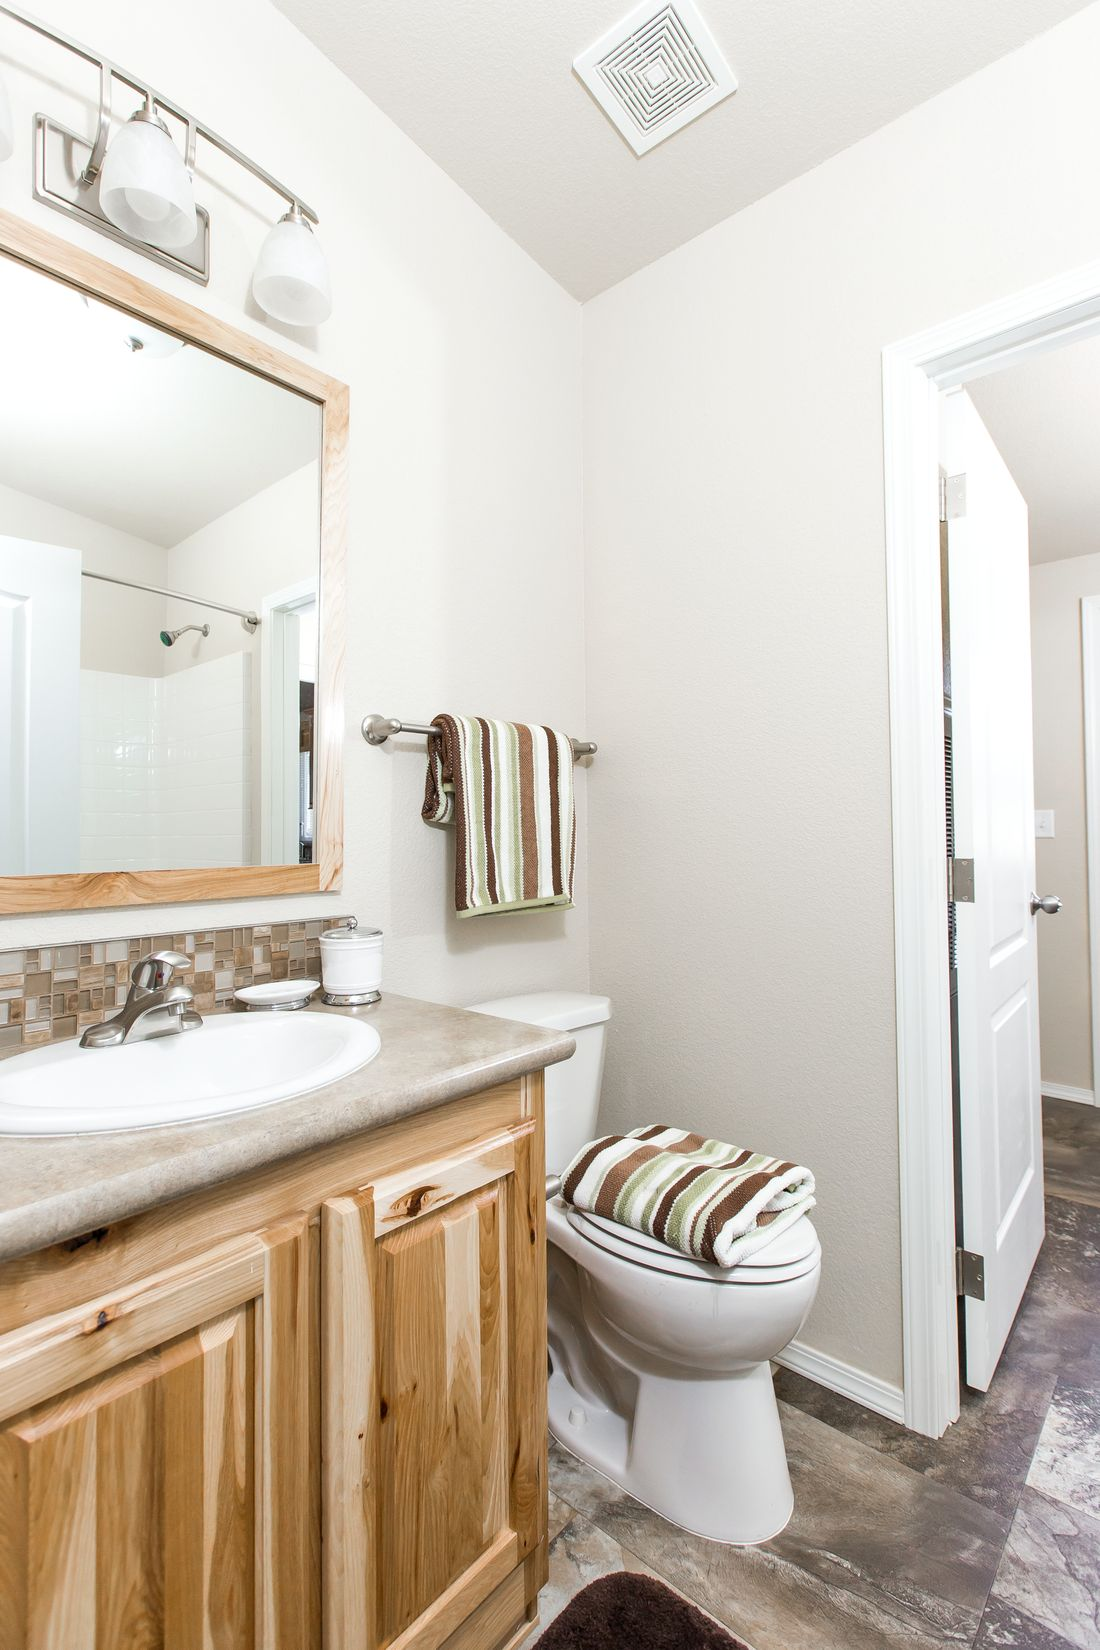 The 9590S BLACKMORE Guest Bathroom. This Manufactured Mobile Home features 3 bedrooms and 2 baths.